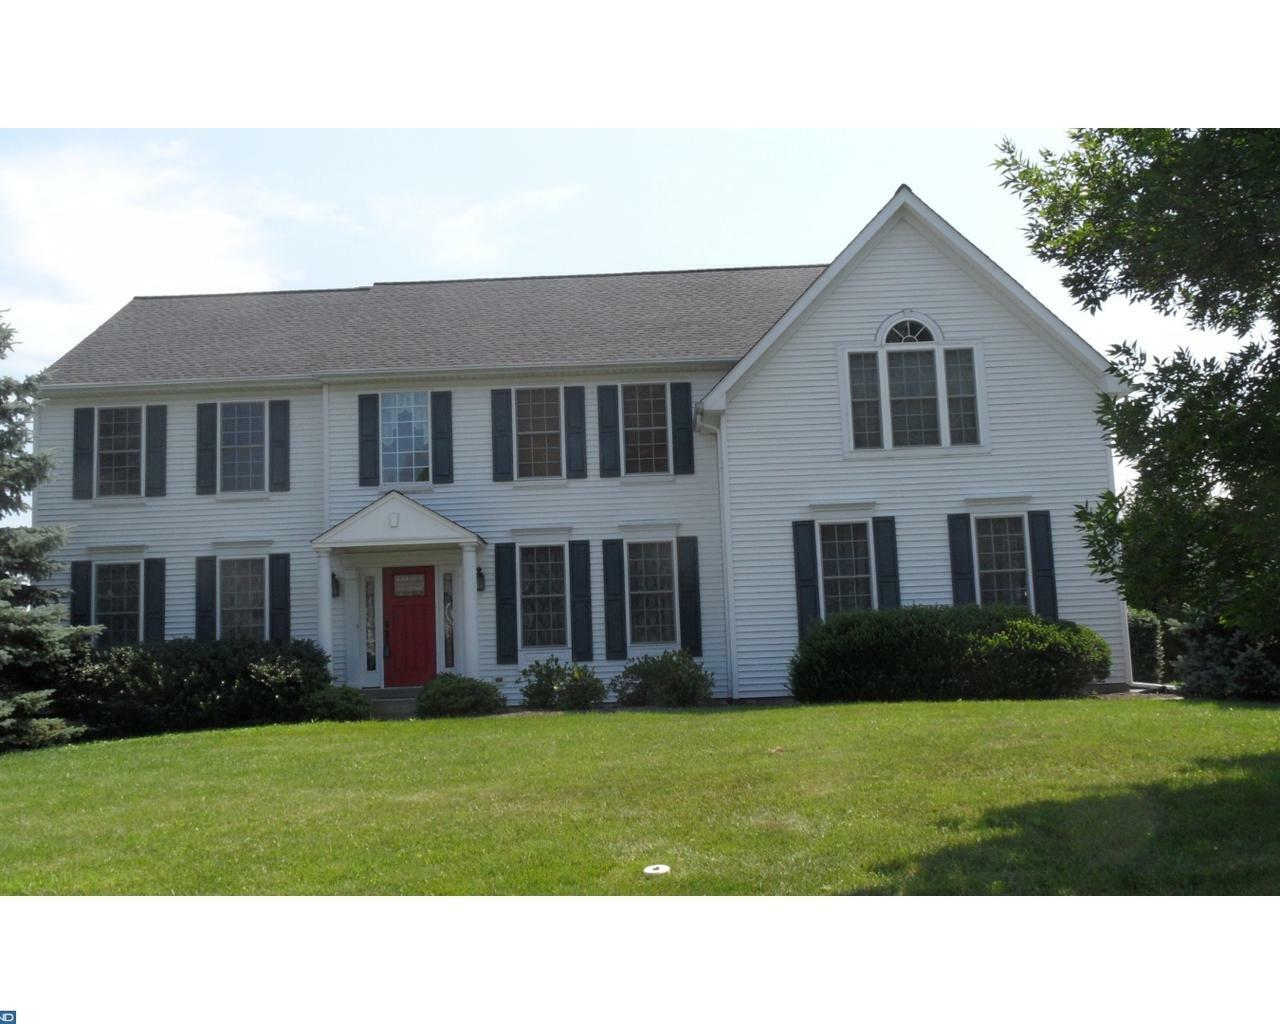 5392 Windtree Dr, Doylestown, PA - USA (photo 1)